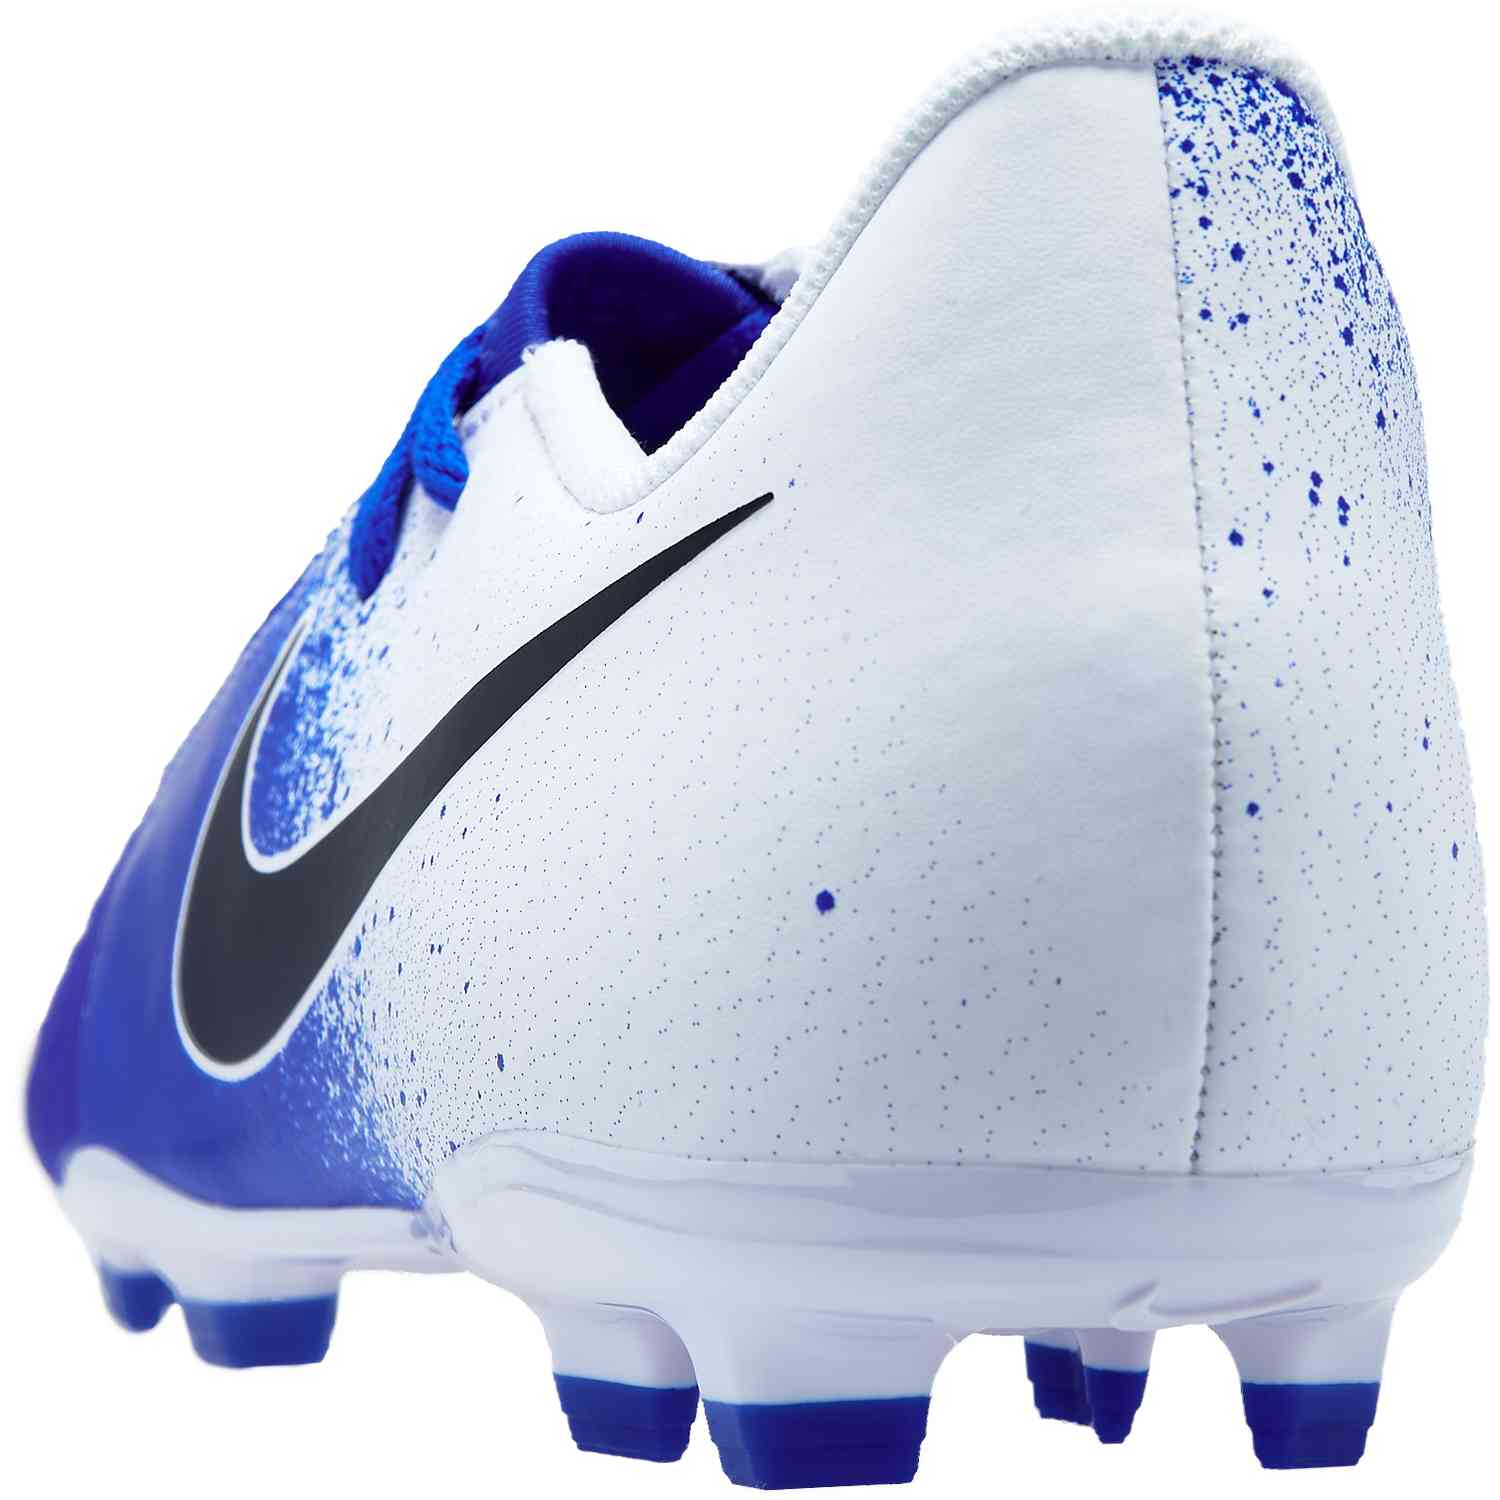 8e2d95f06 Home   Shop By Brand   Nike Soccer   Nike Soccer Shoes   Nike Phantom Venom  Soccer Cleats